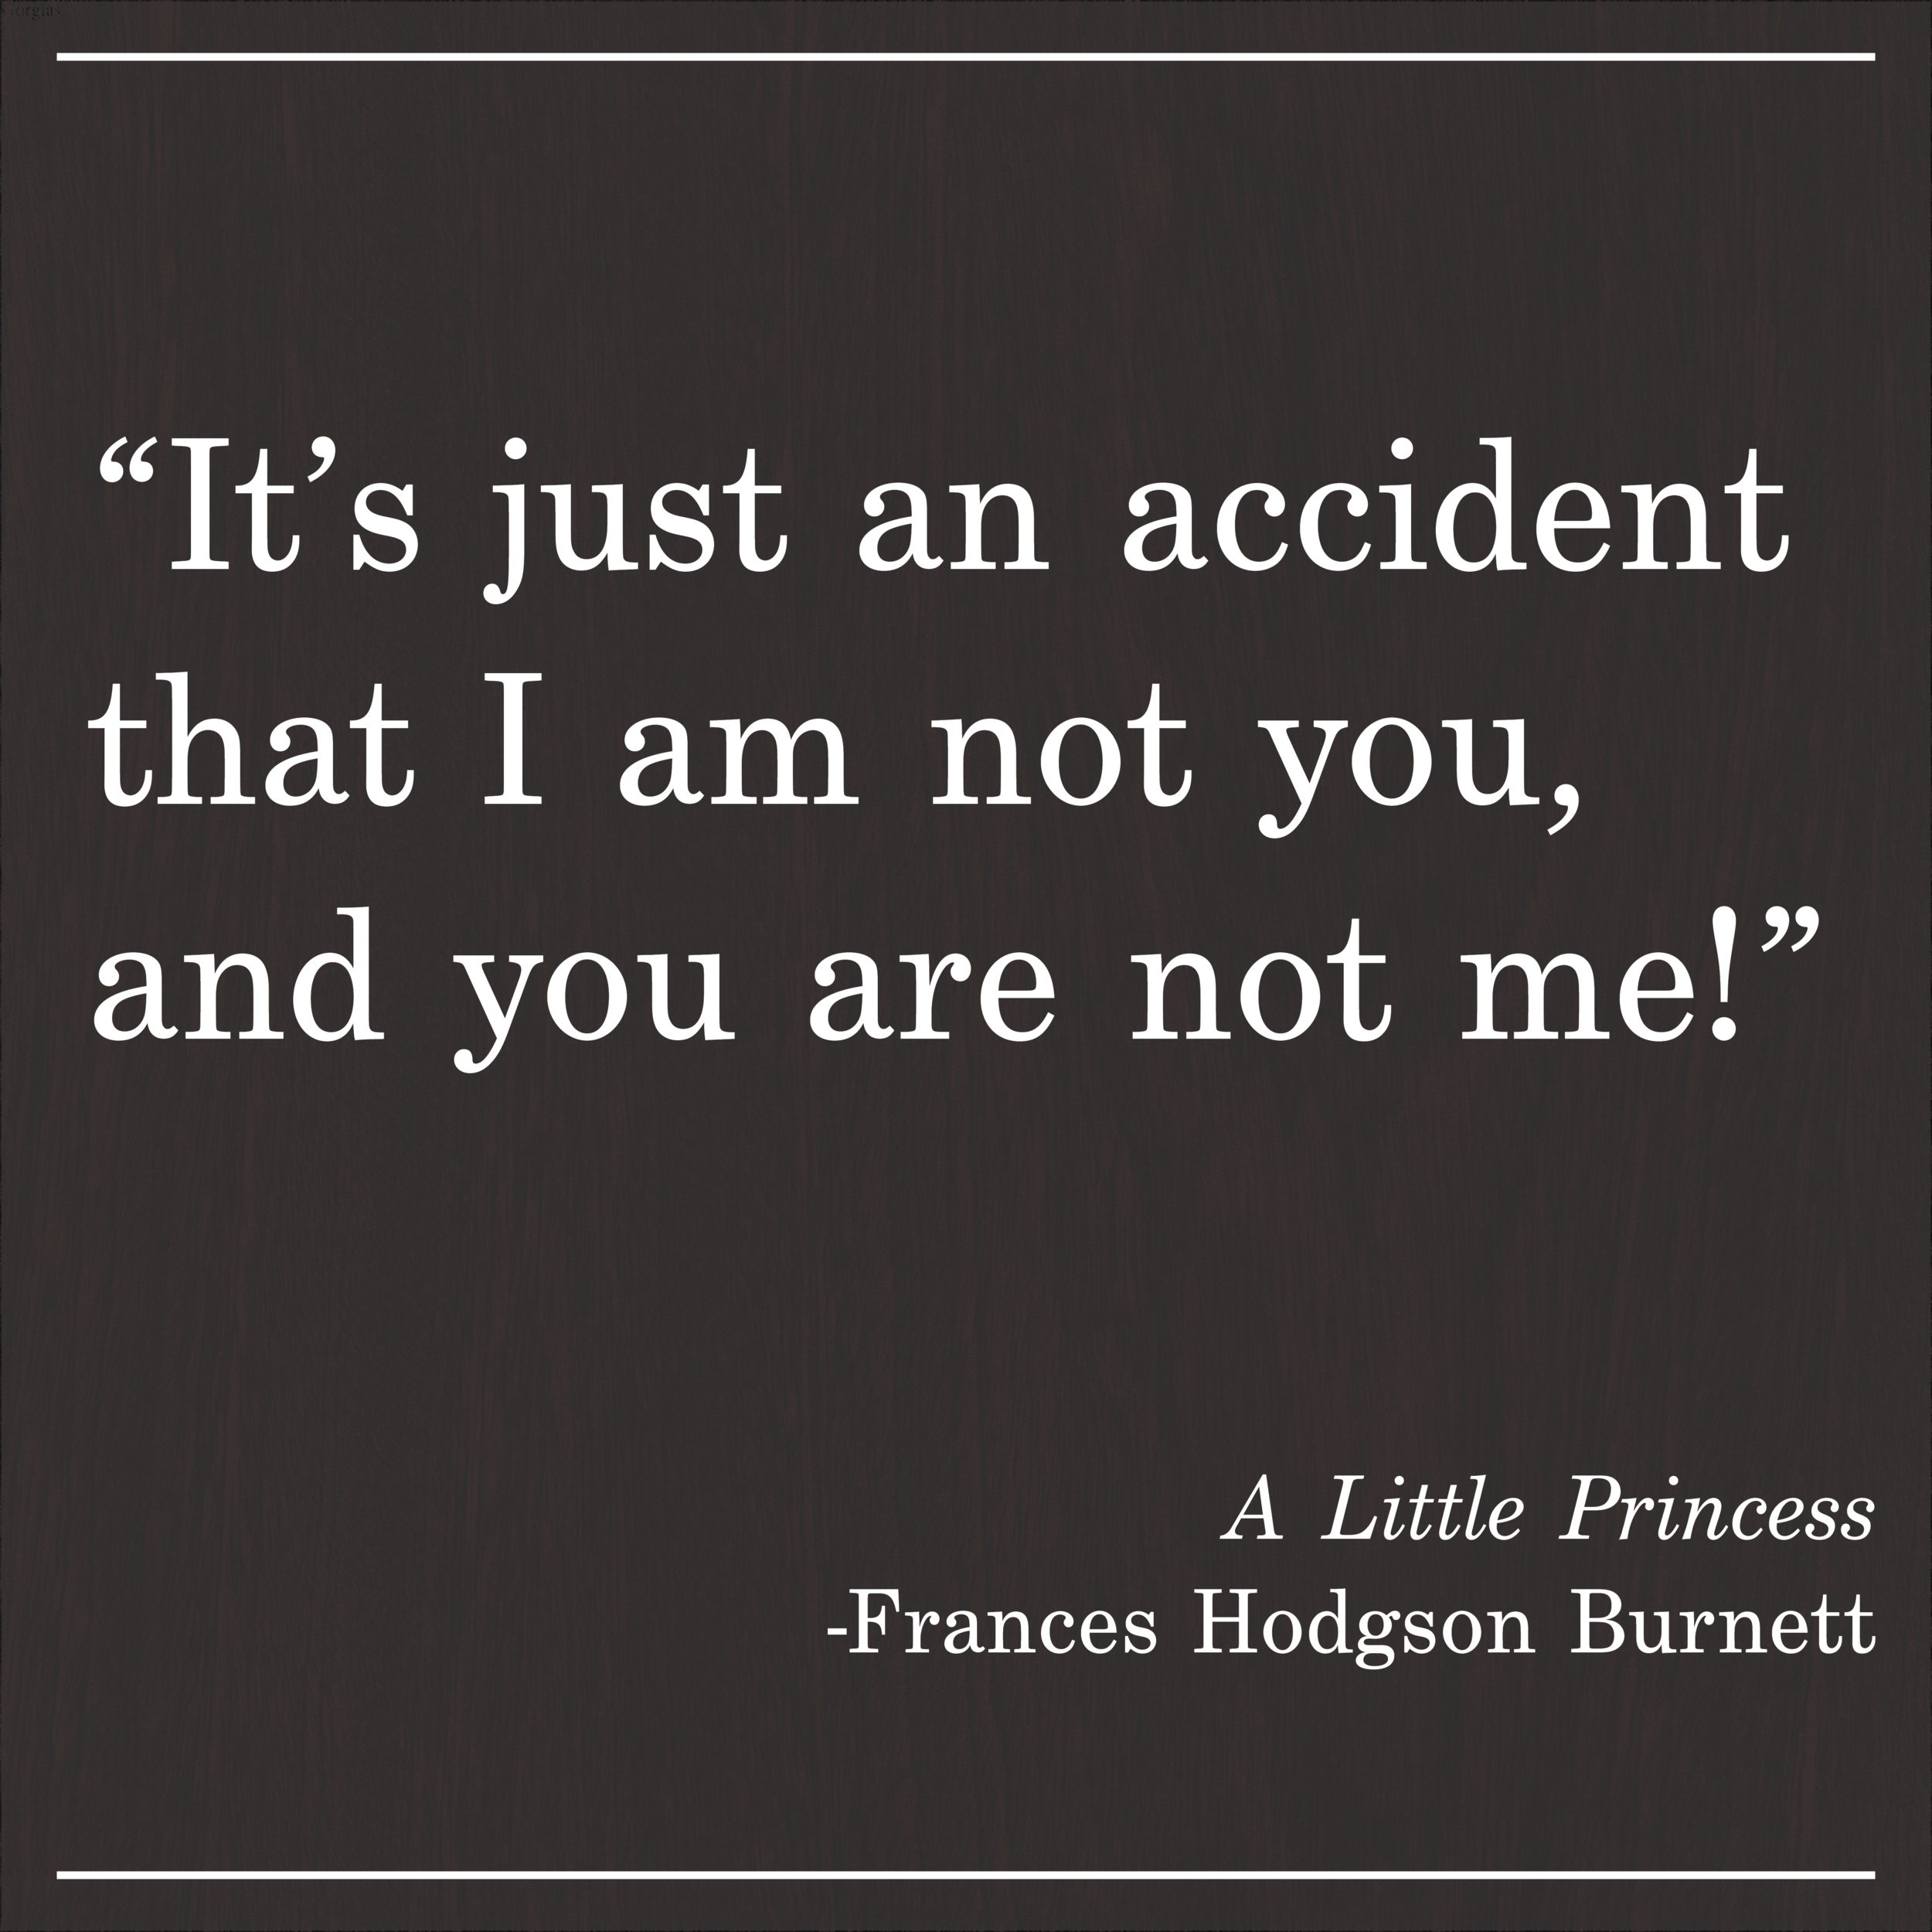 Daily Quote A Little Princess by Frances Hodgson Burnett